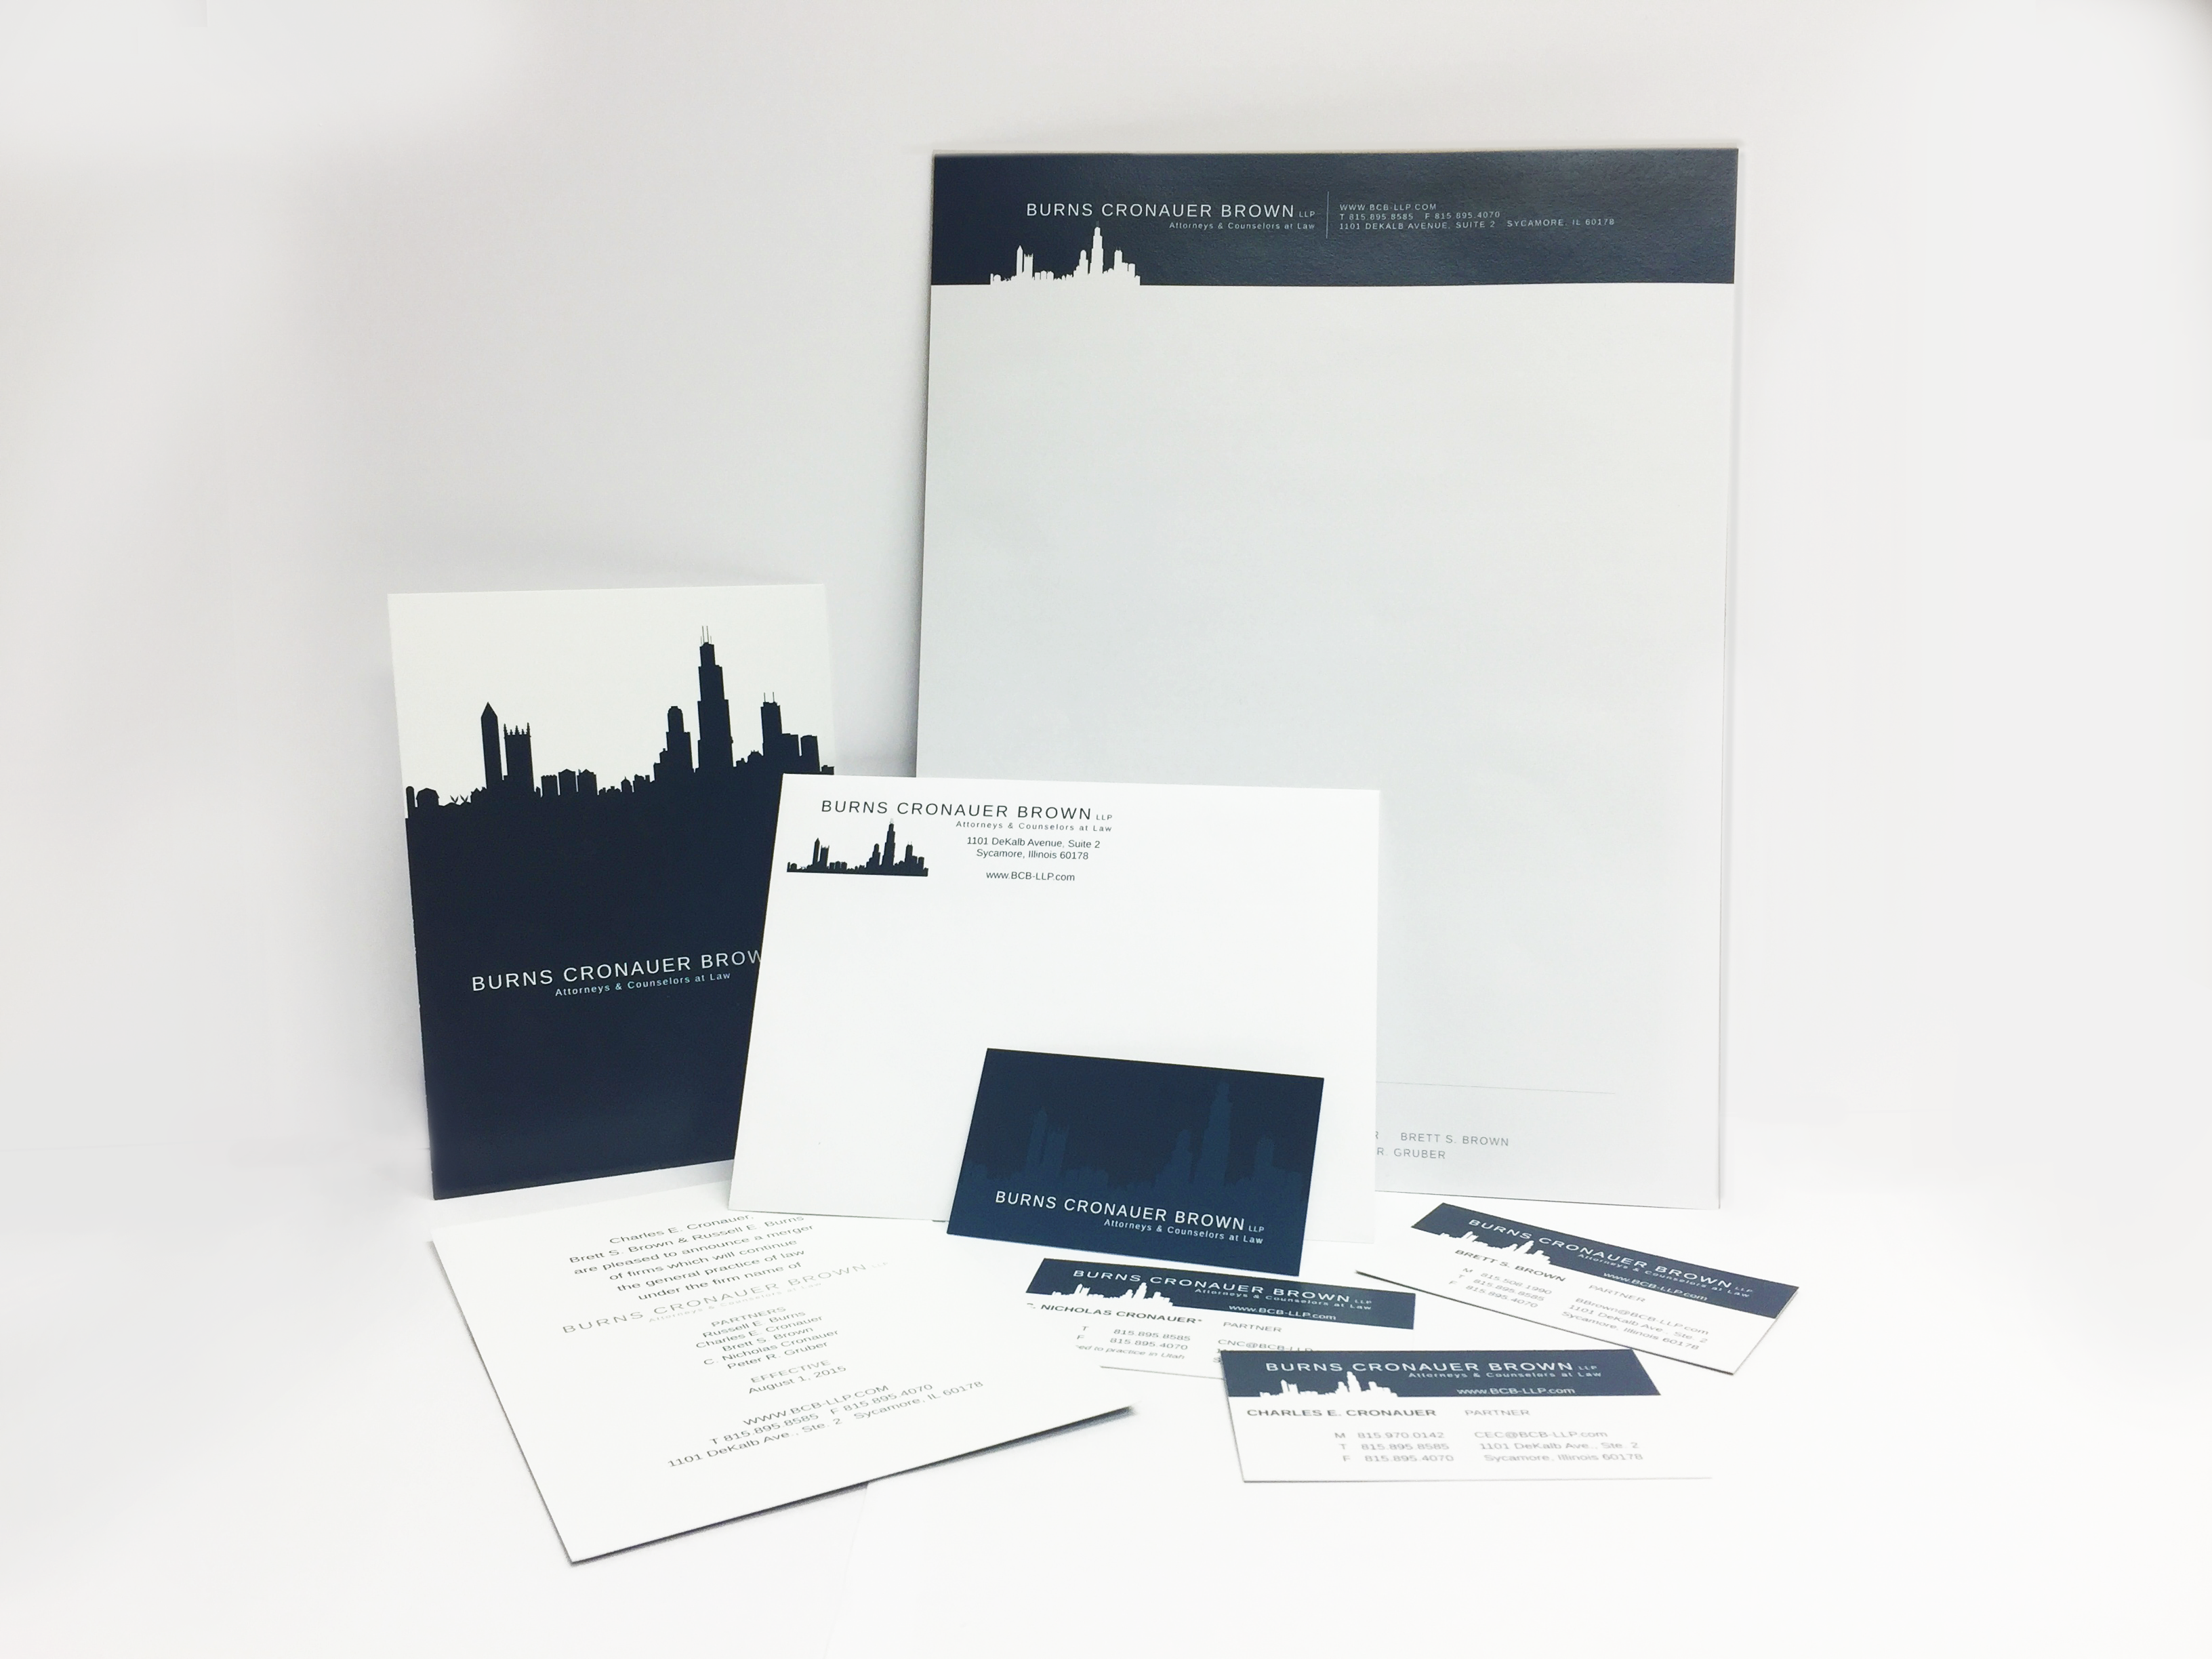 Full service book, business cards, poster, and mail